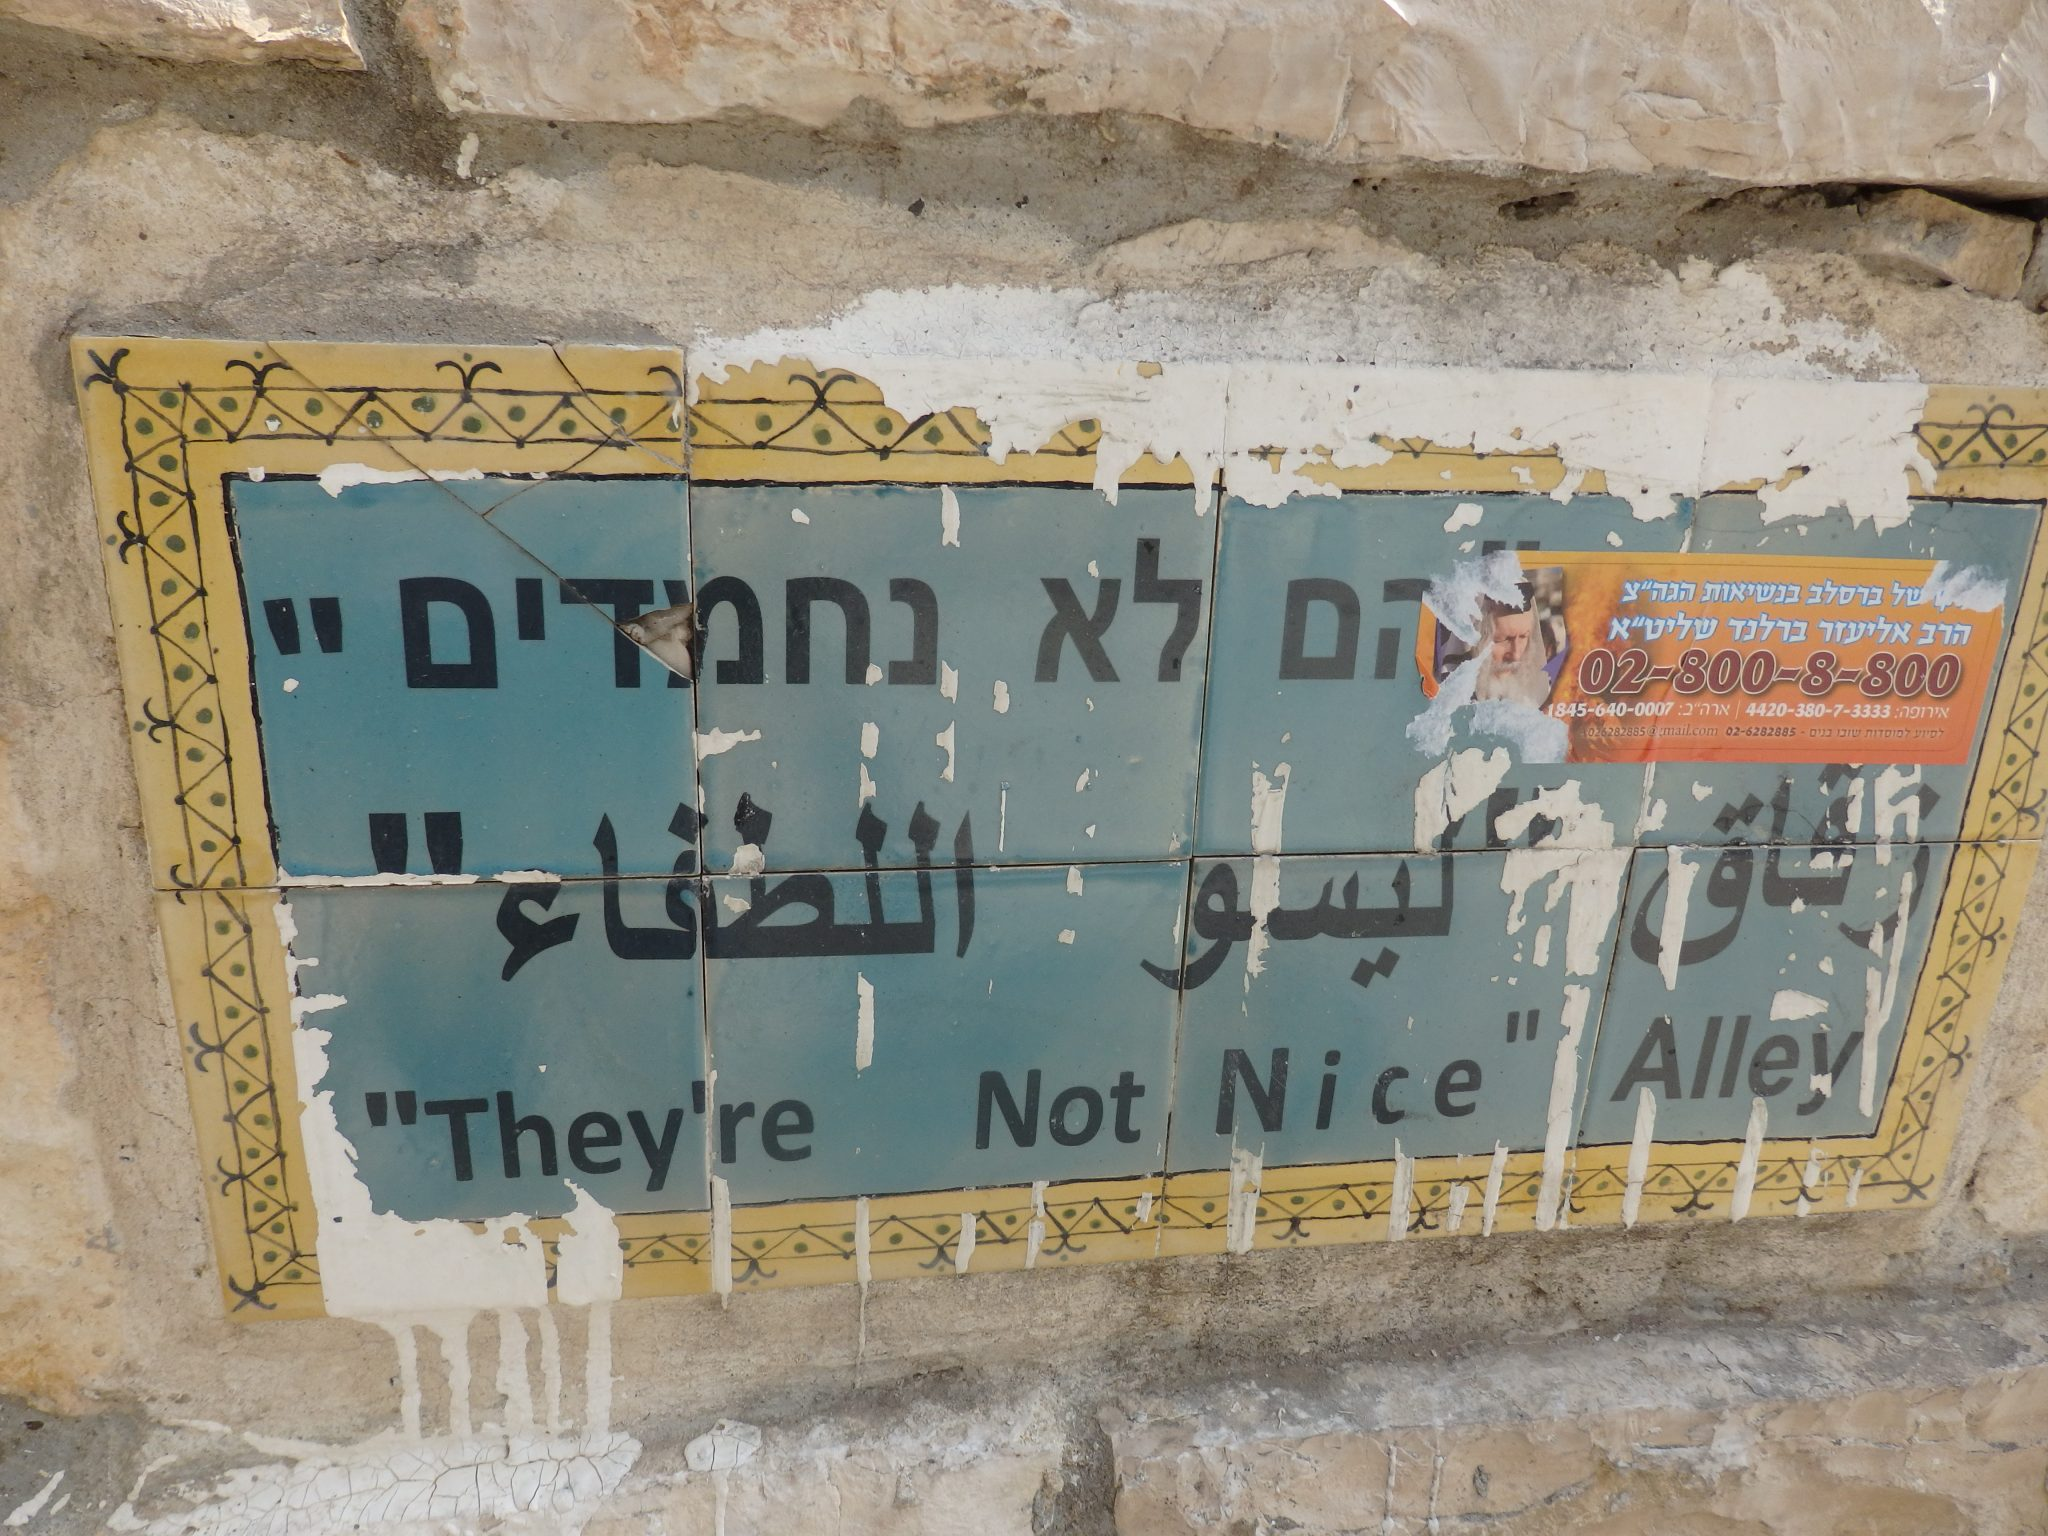 One of the factoids on my Bitemojo tour was about this street name. Apparently Golda Meir said this after meeting leaders of the Black Pathers, a protest group fighting discrimination against Mizrahi (eastern) Jews.